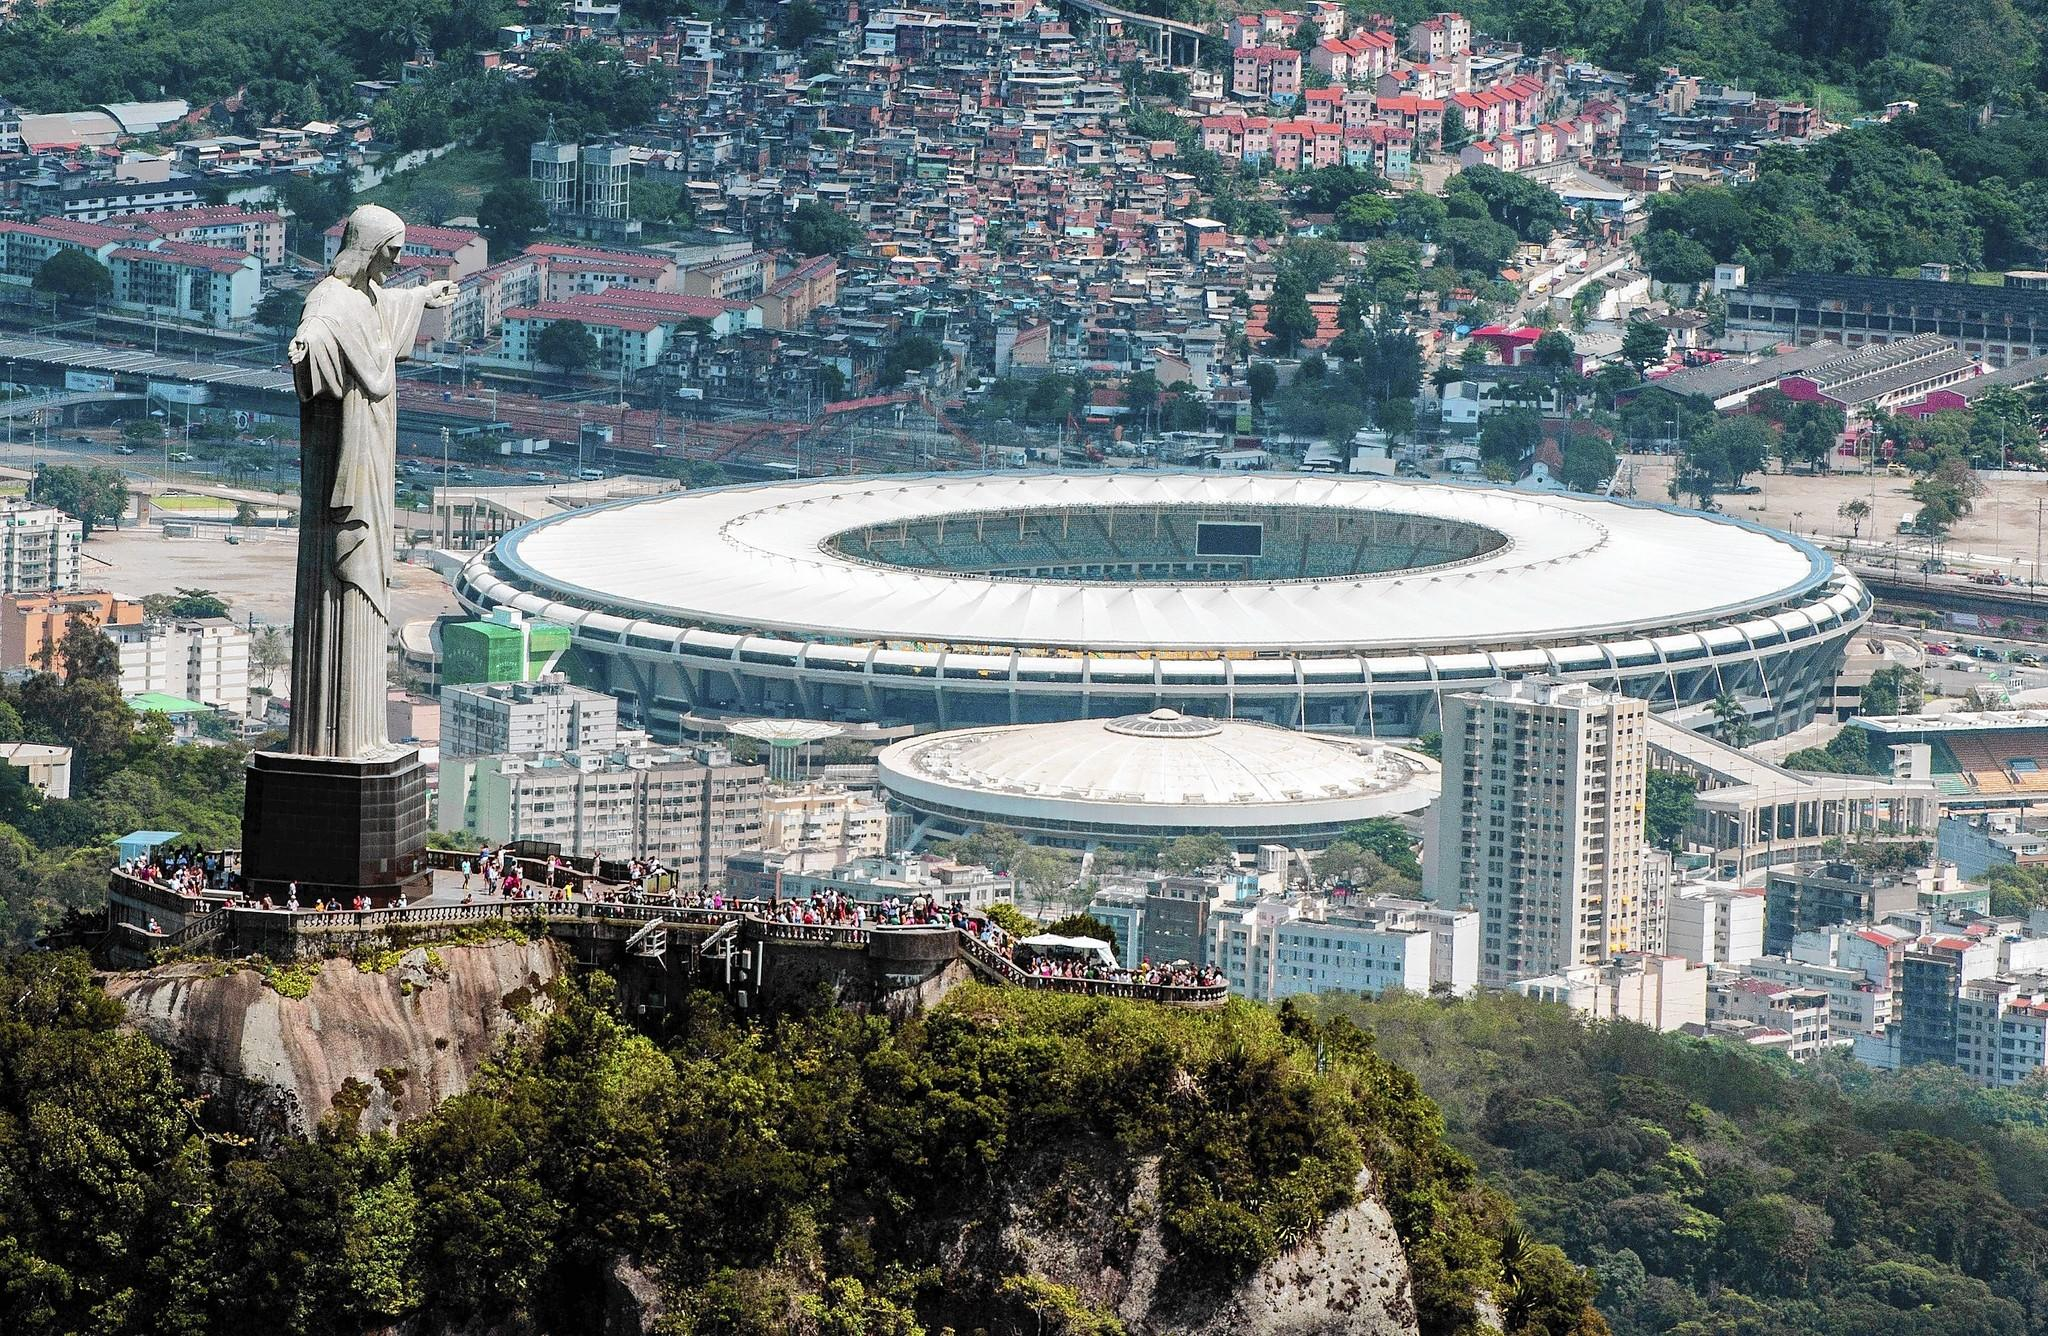 The Christ the Redeemer statue overlooks Maracana stadium in Rio de Janeiro, which will host the 2014 World Cup and the 2016 Summer Olympics.